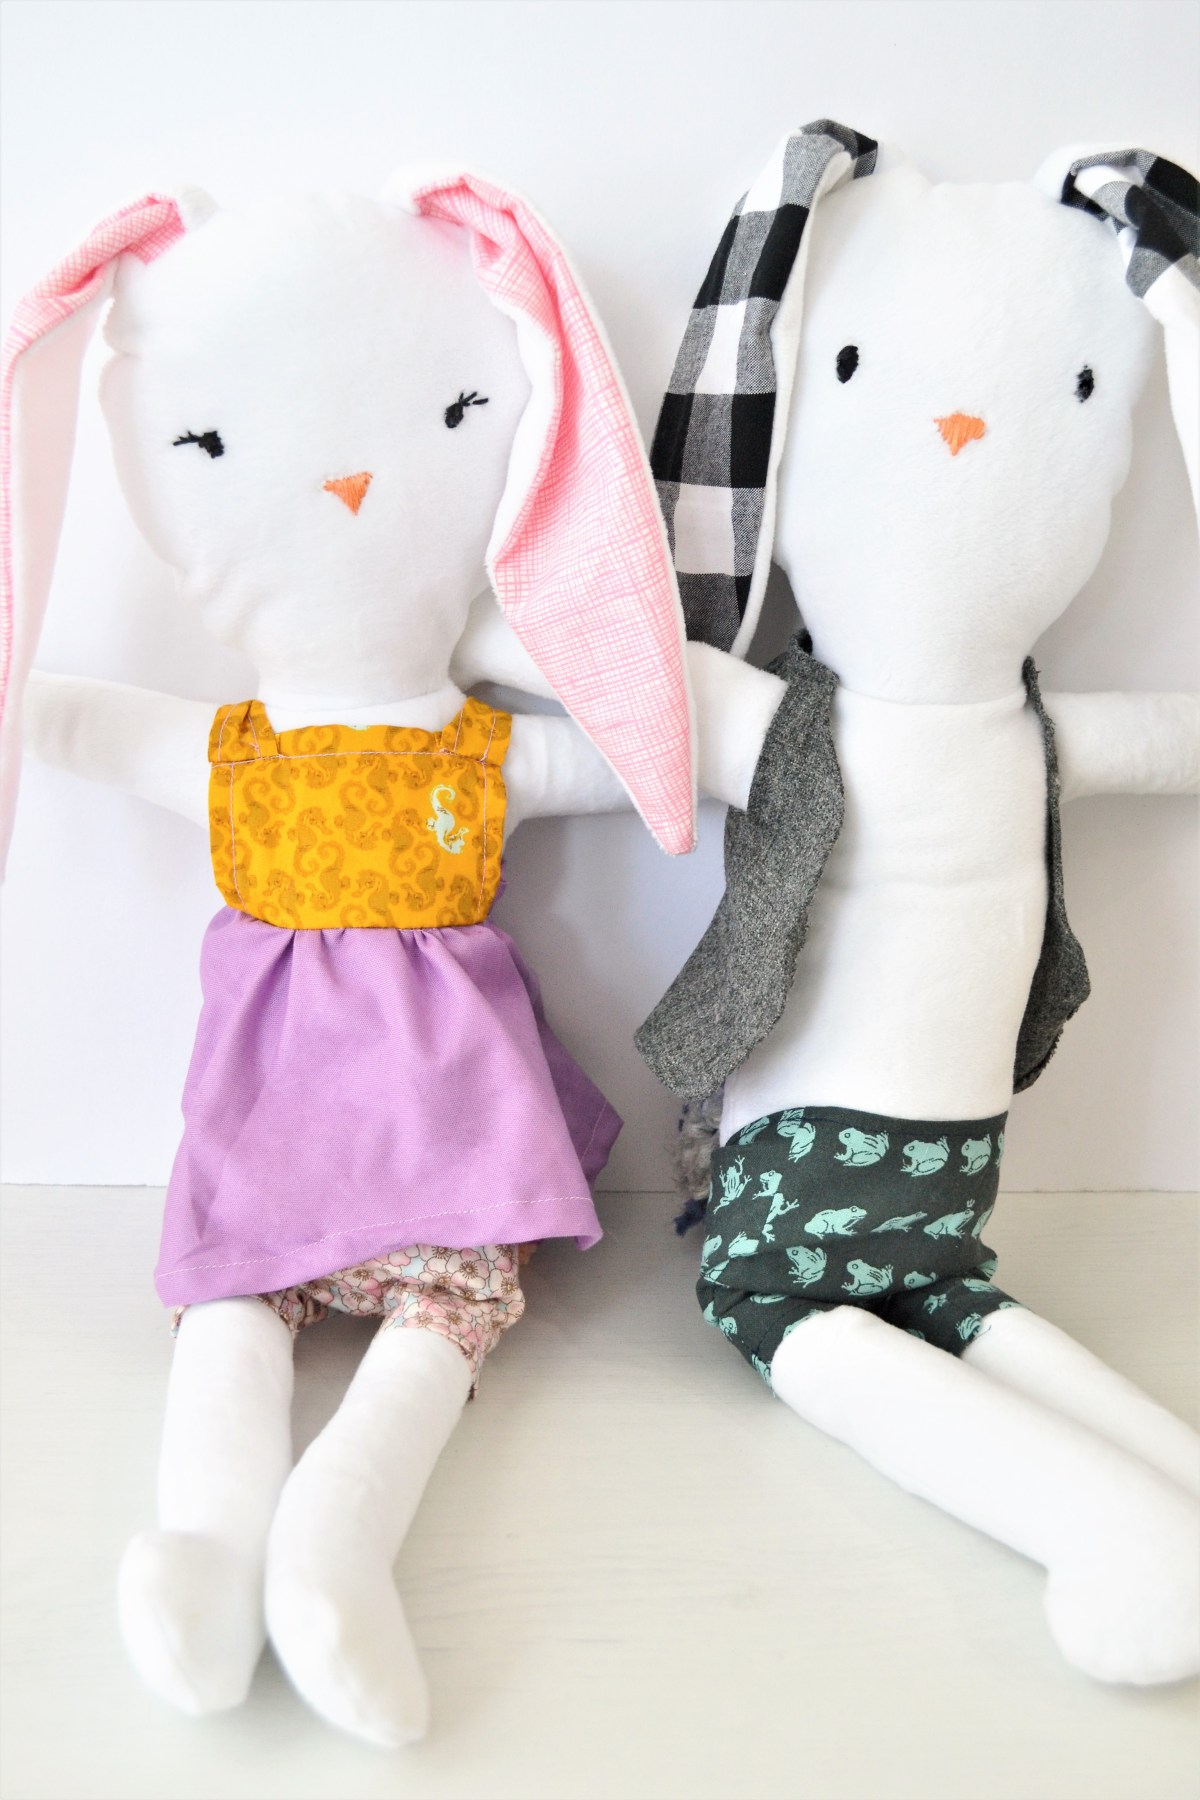 How to Make a Simple Stuffed Animal: Cute Bunnies!! - Making Things